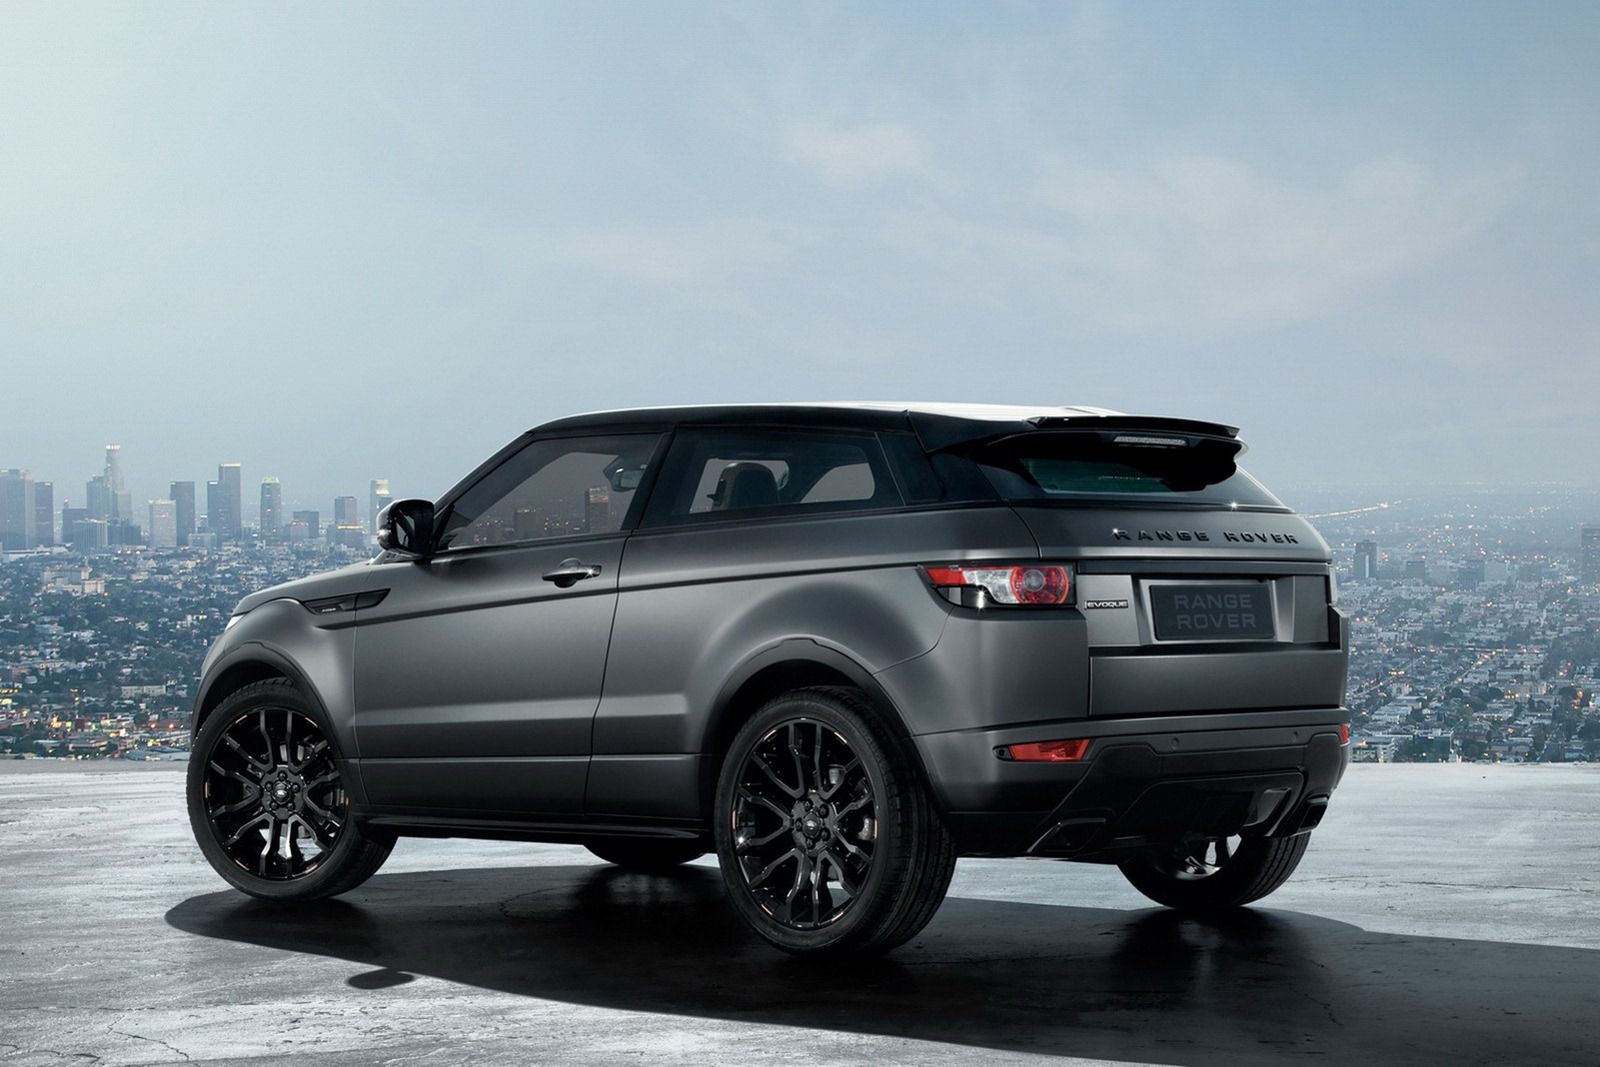 evoque range rover evoque tuning suv tuning. Black Bedroom Furniture Sets. Home Design Ideas